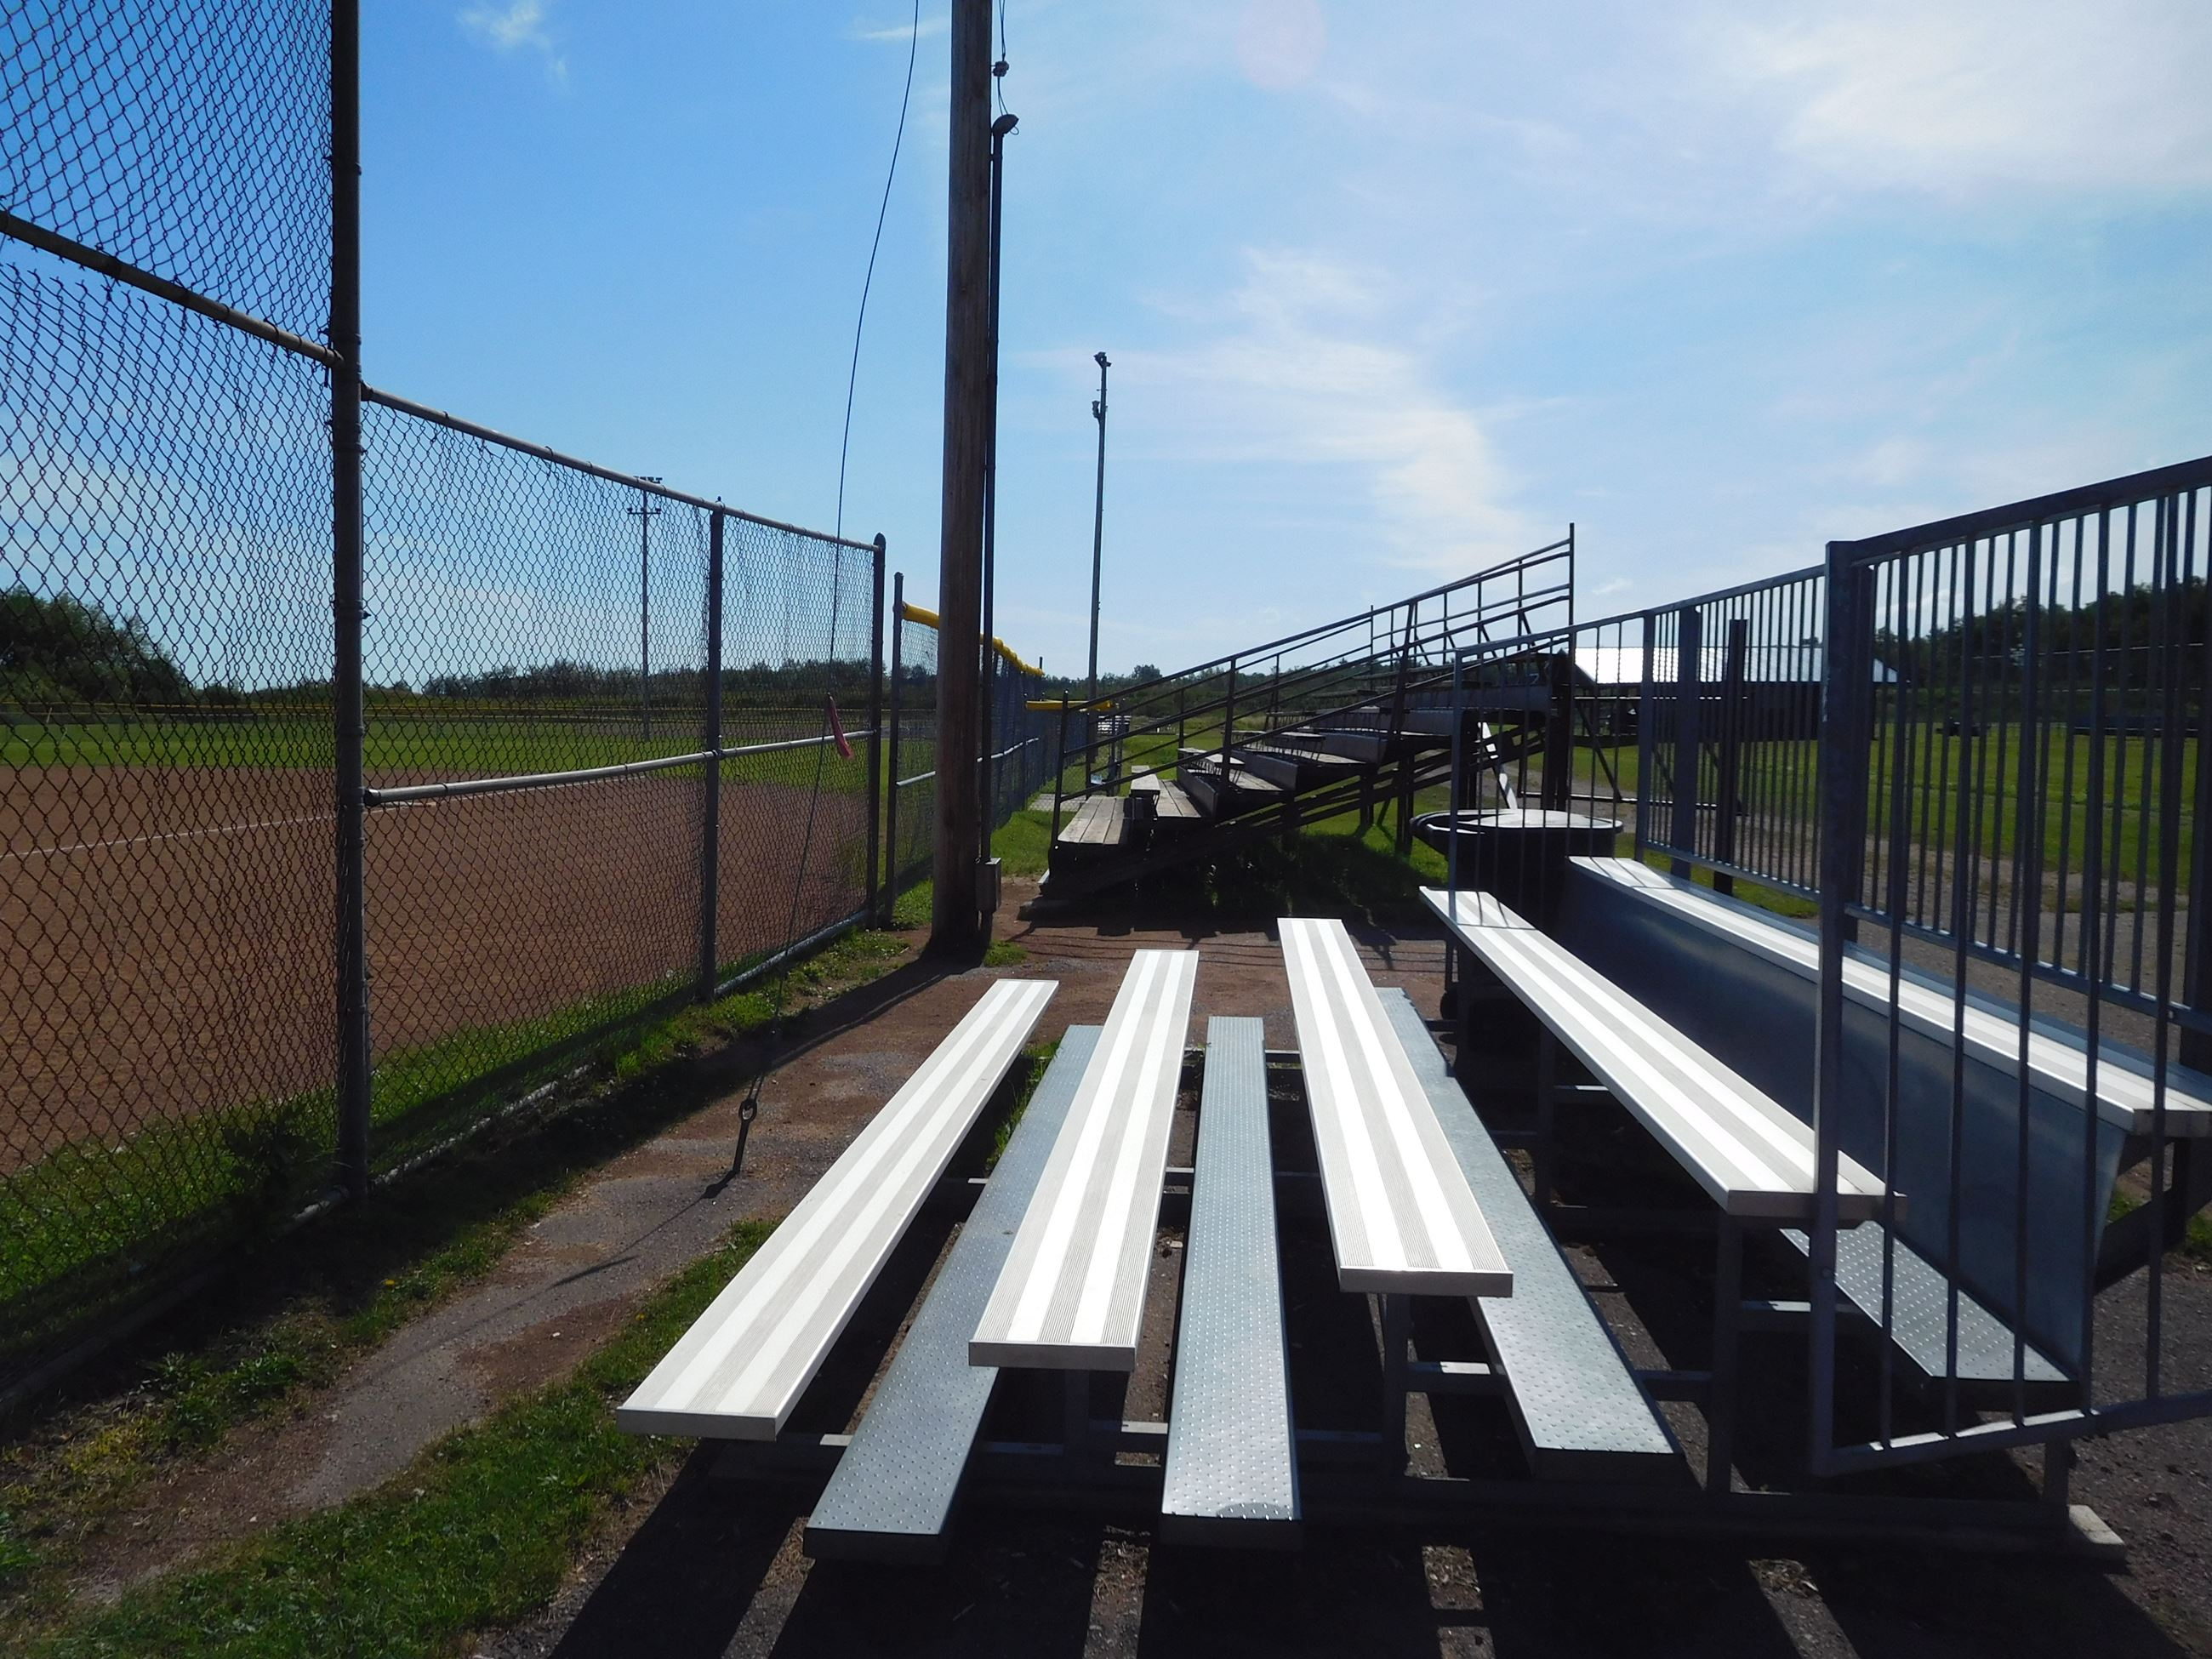 Tim Wicklund Memorial Field metal set of bleachers